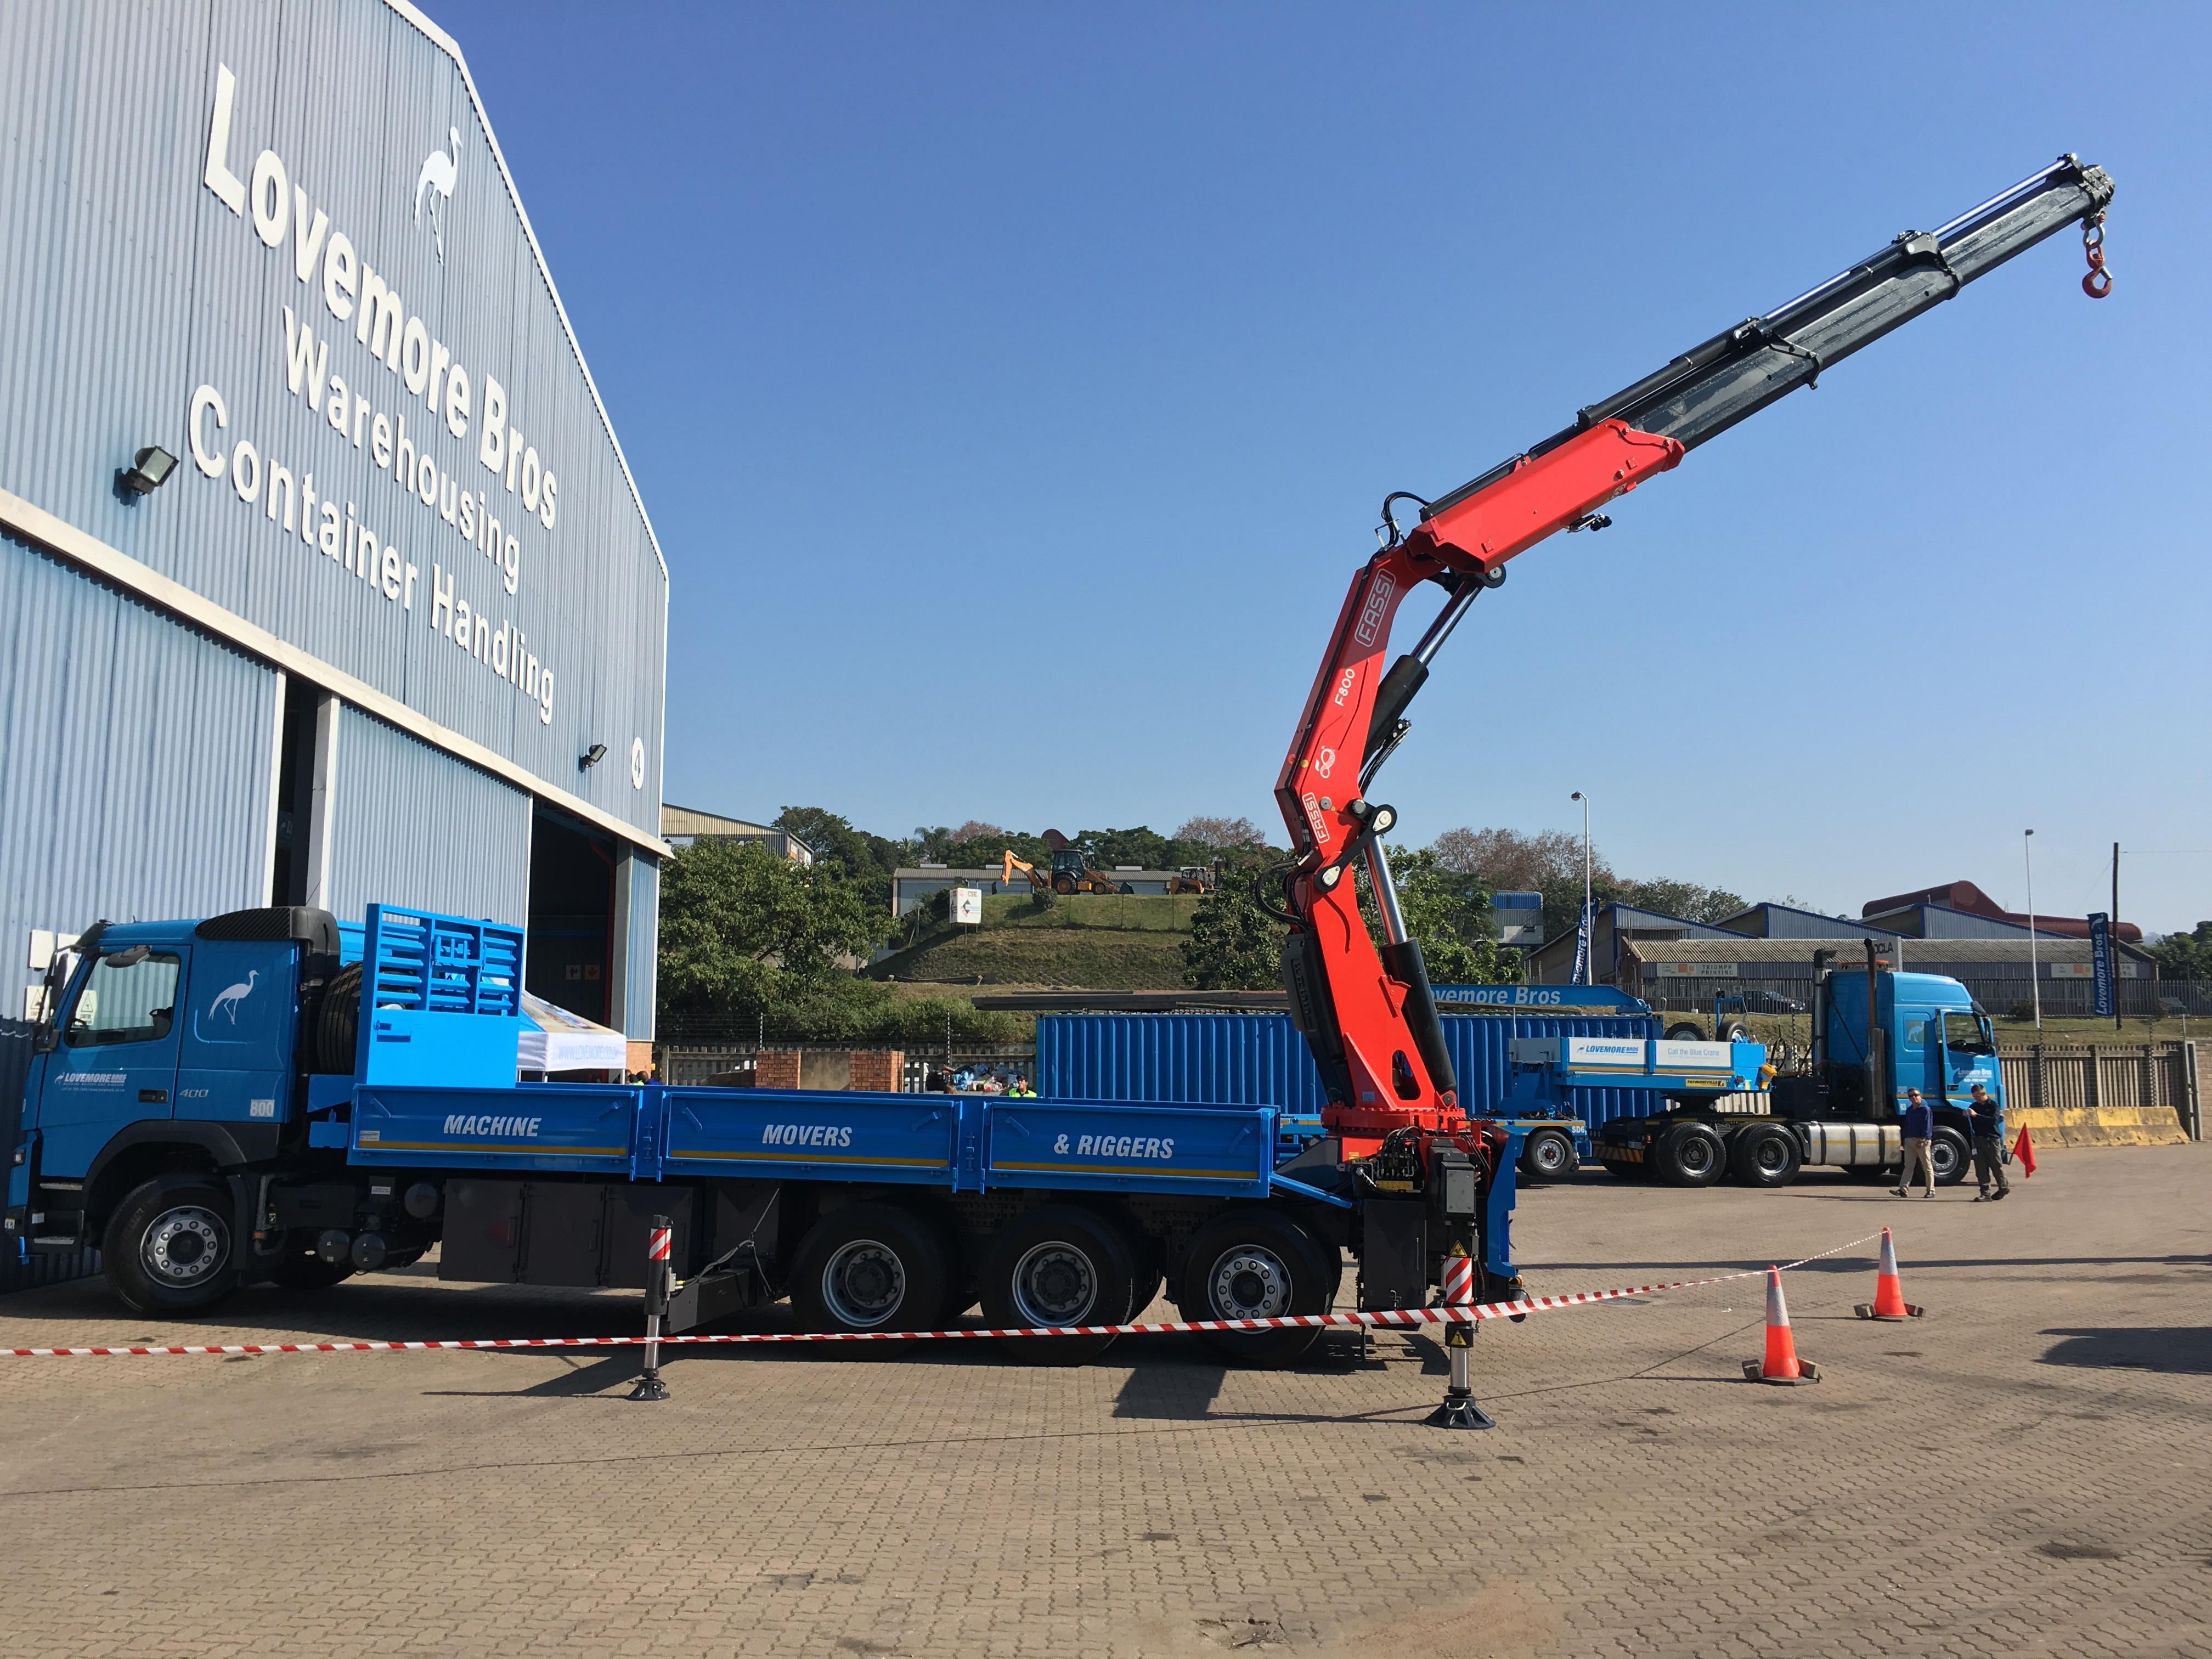 600SA TO DELIVER FIRST FASSI CRANE WITH FITTED NIGHT WORK LIGHTS FITTED TO TRIDEM CONFIG IN KWAZULU-NATAL